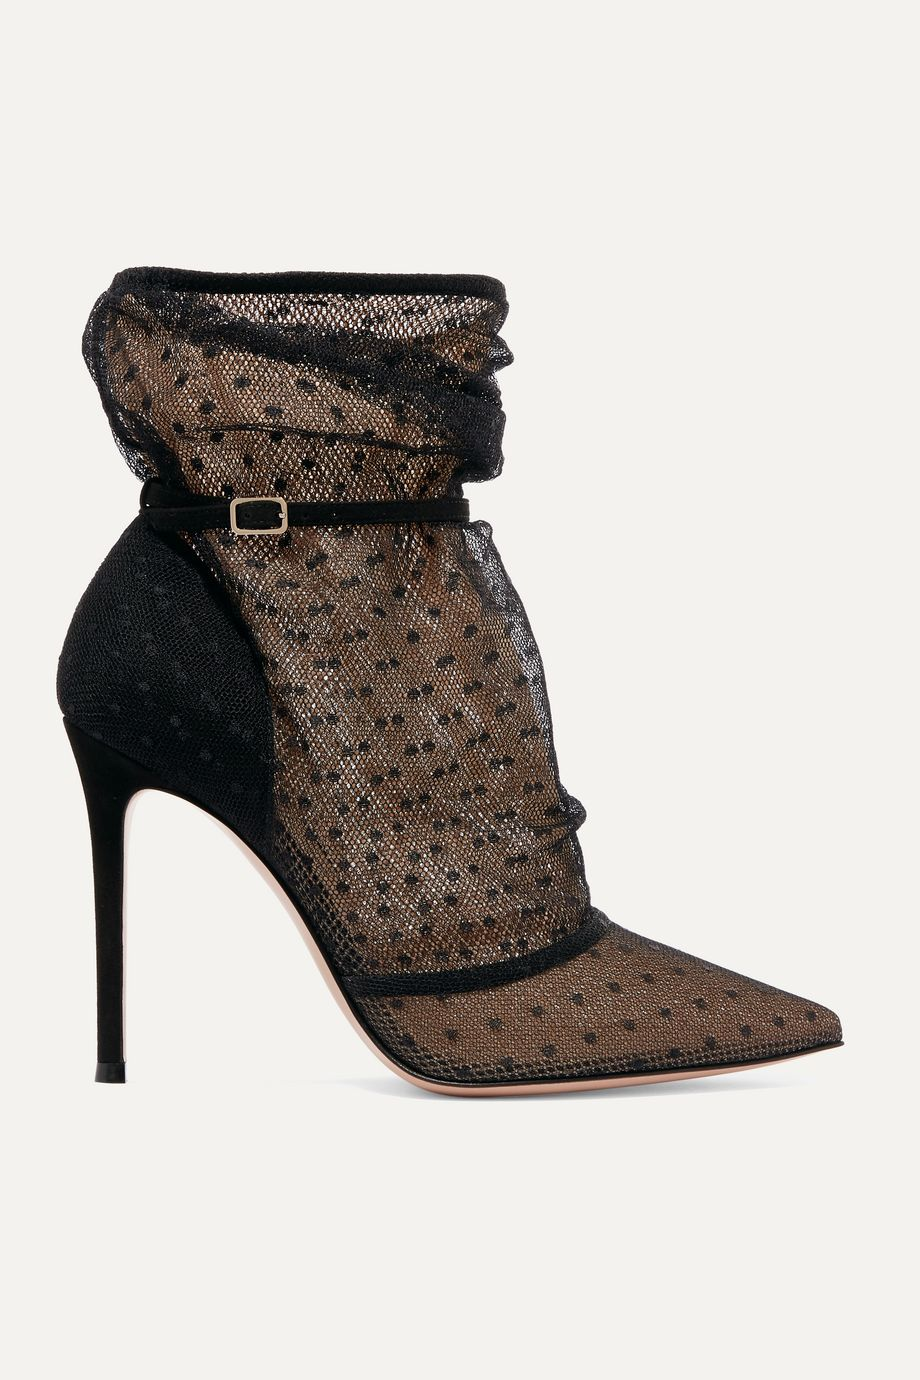 Gianvito Rossi 105 polka-dot tulle and suede ankle boots